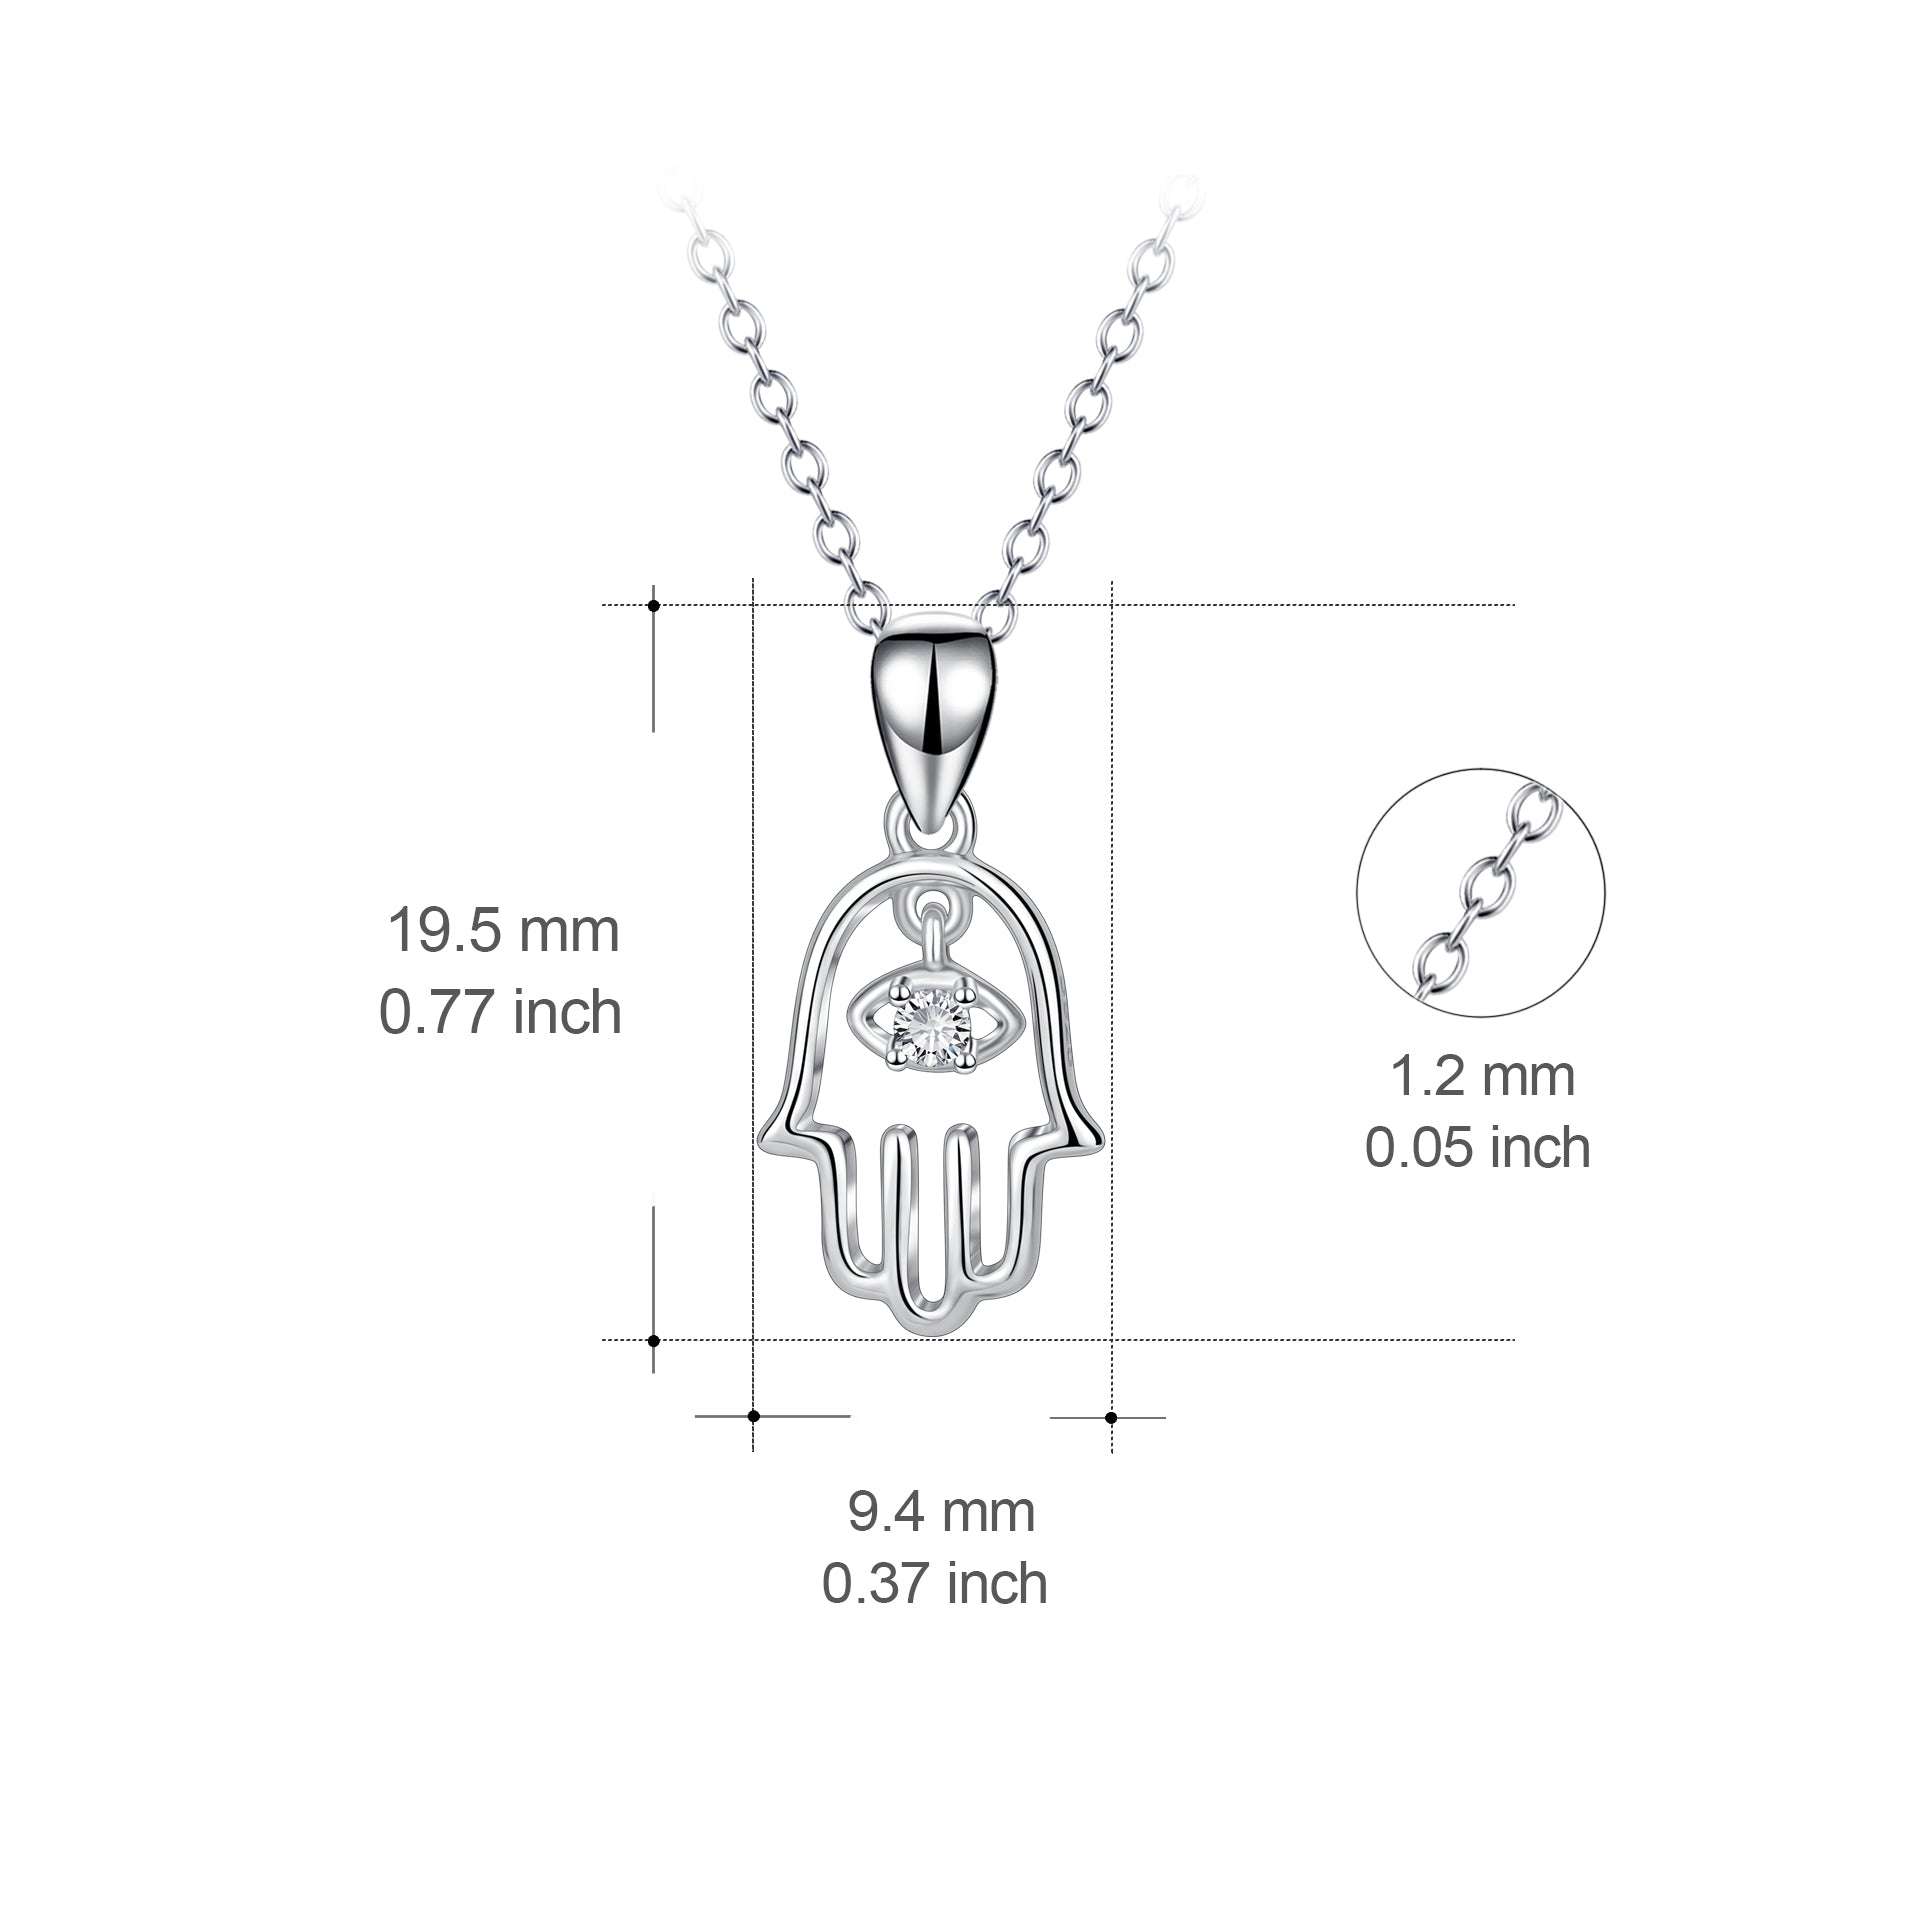 Hanging Pendant Necklace European Silver Chain Necklace Wholesale